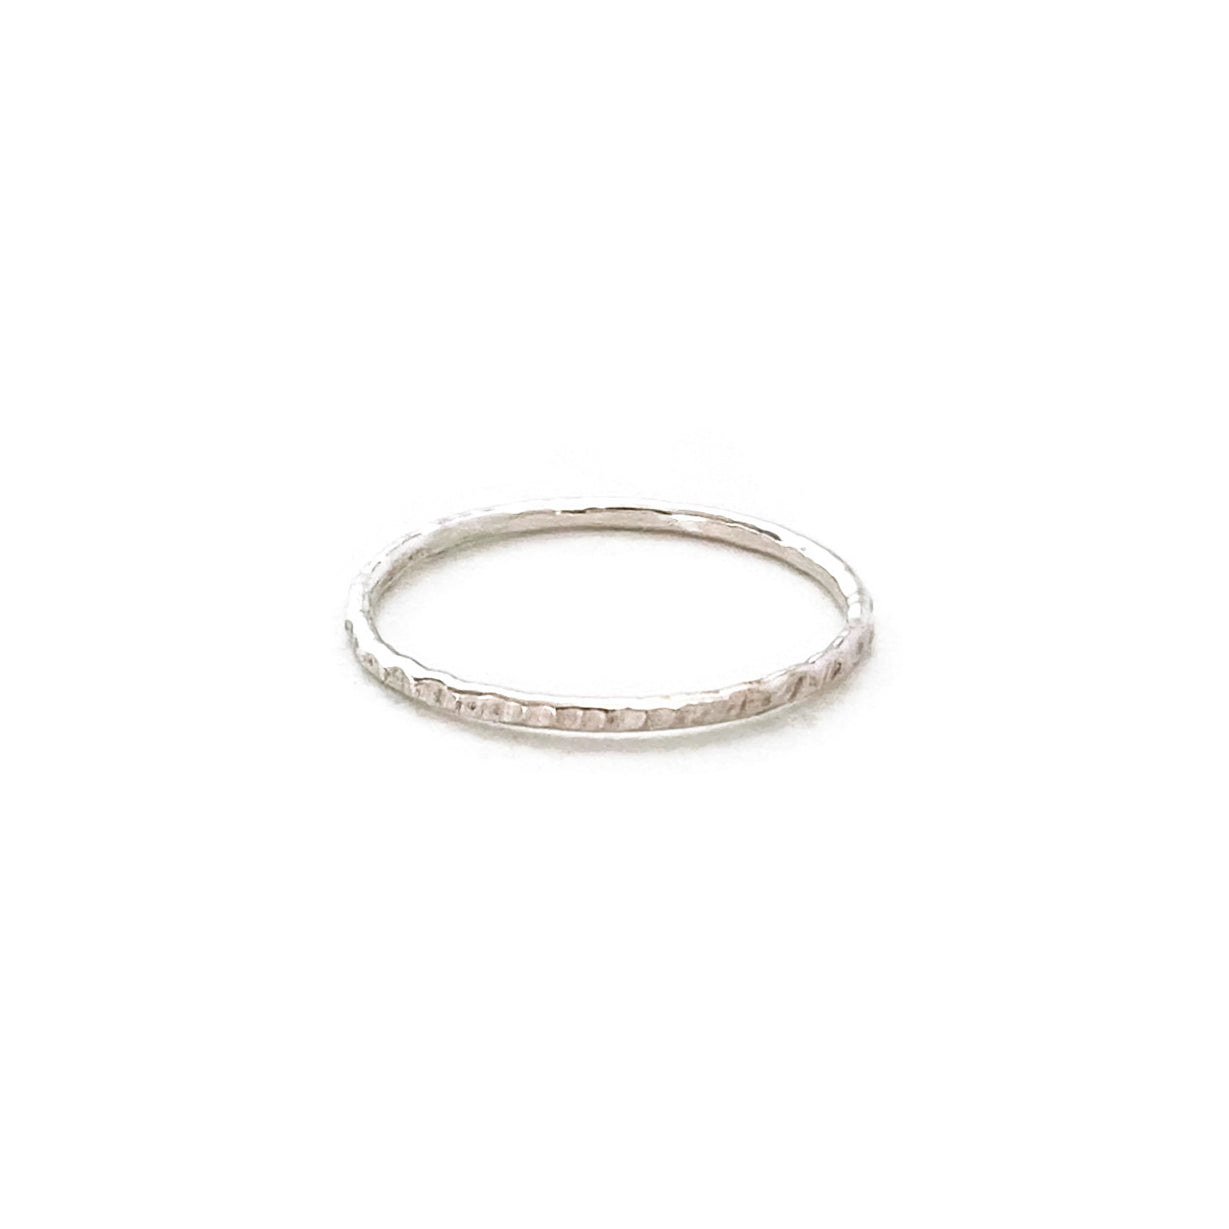 sterling silver hammered ring is handmade in our Jewelry studio in San Francisco